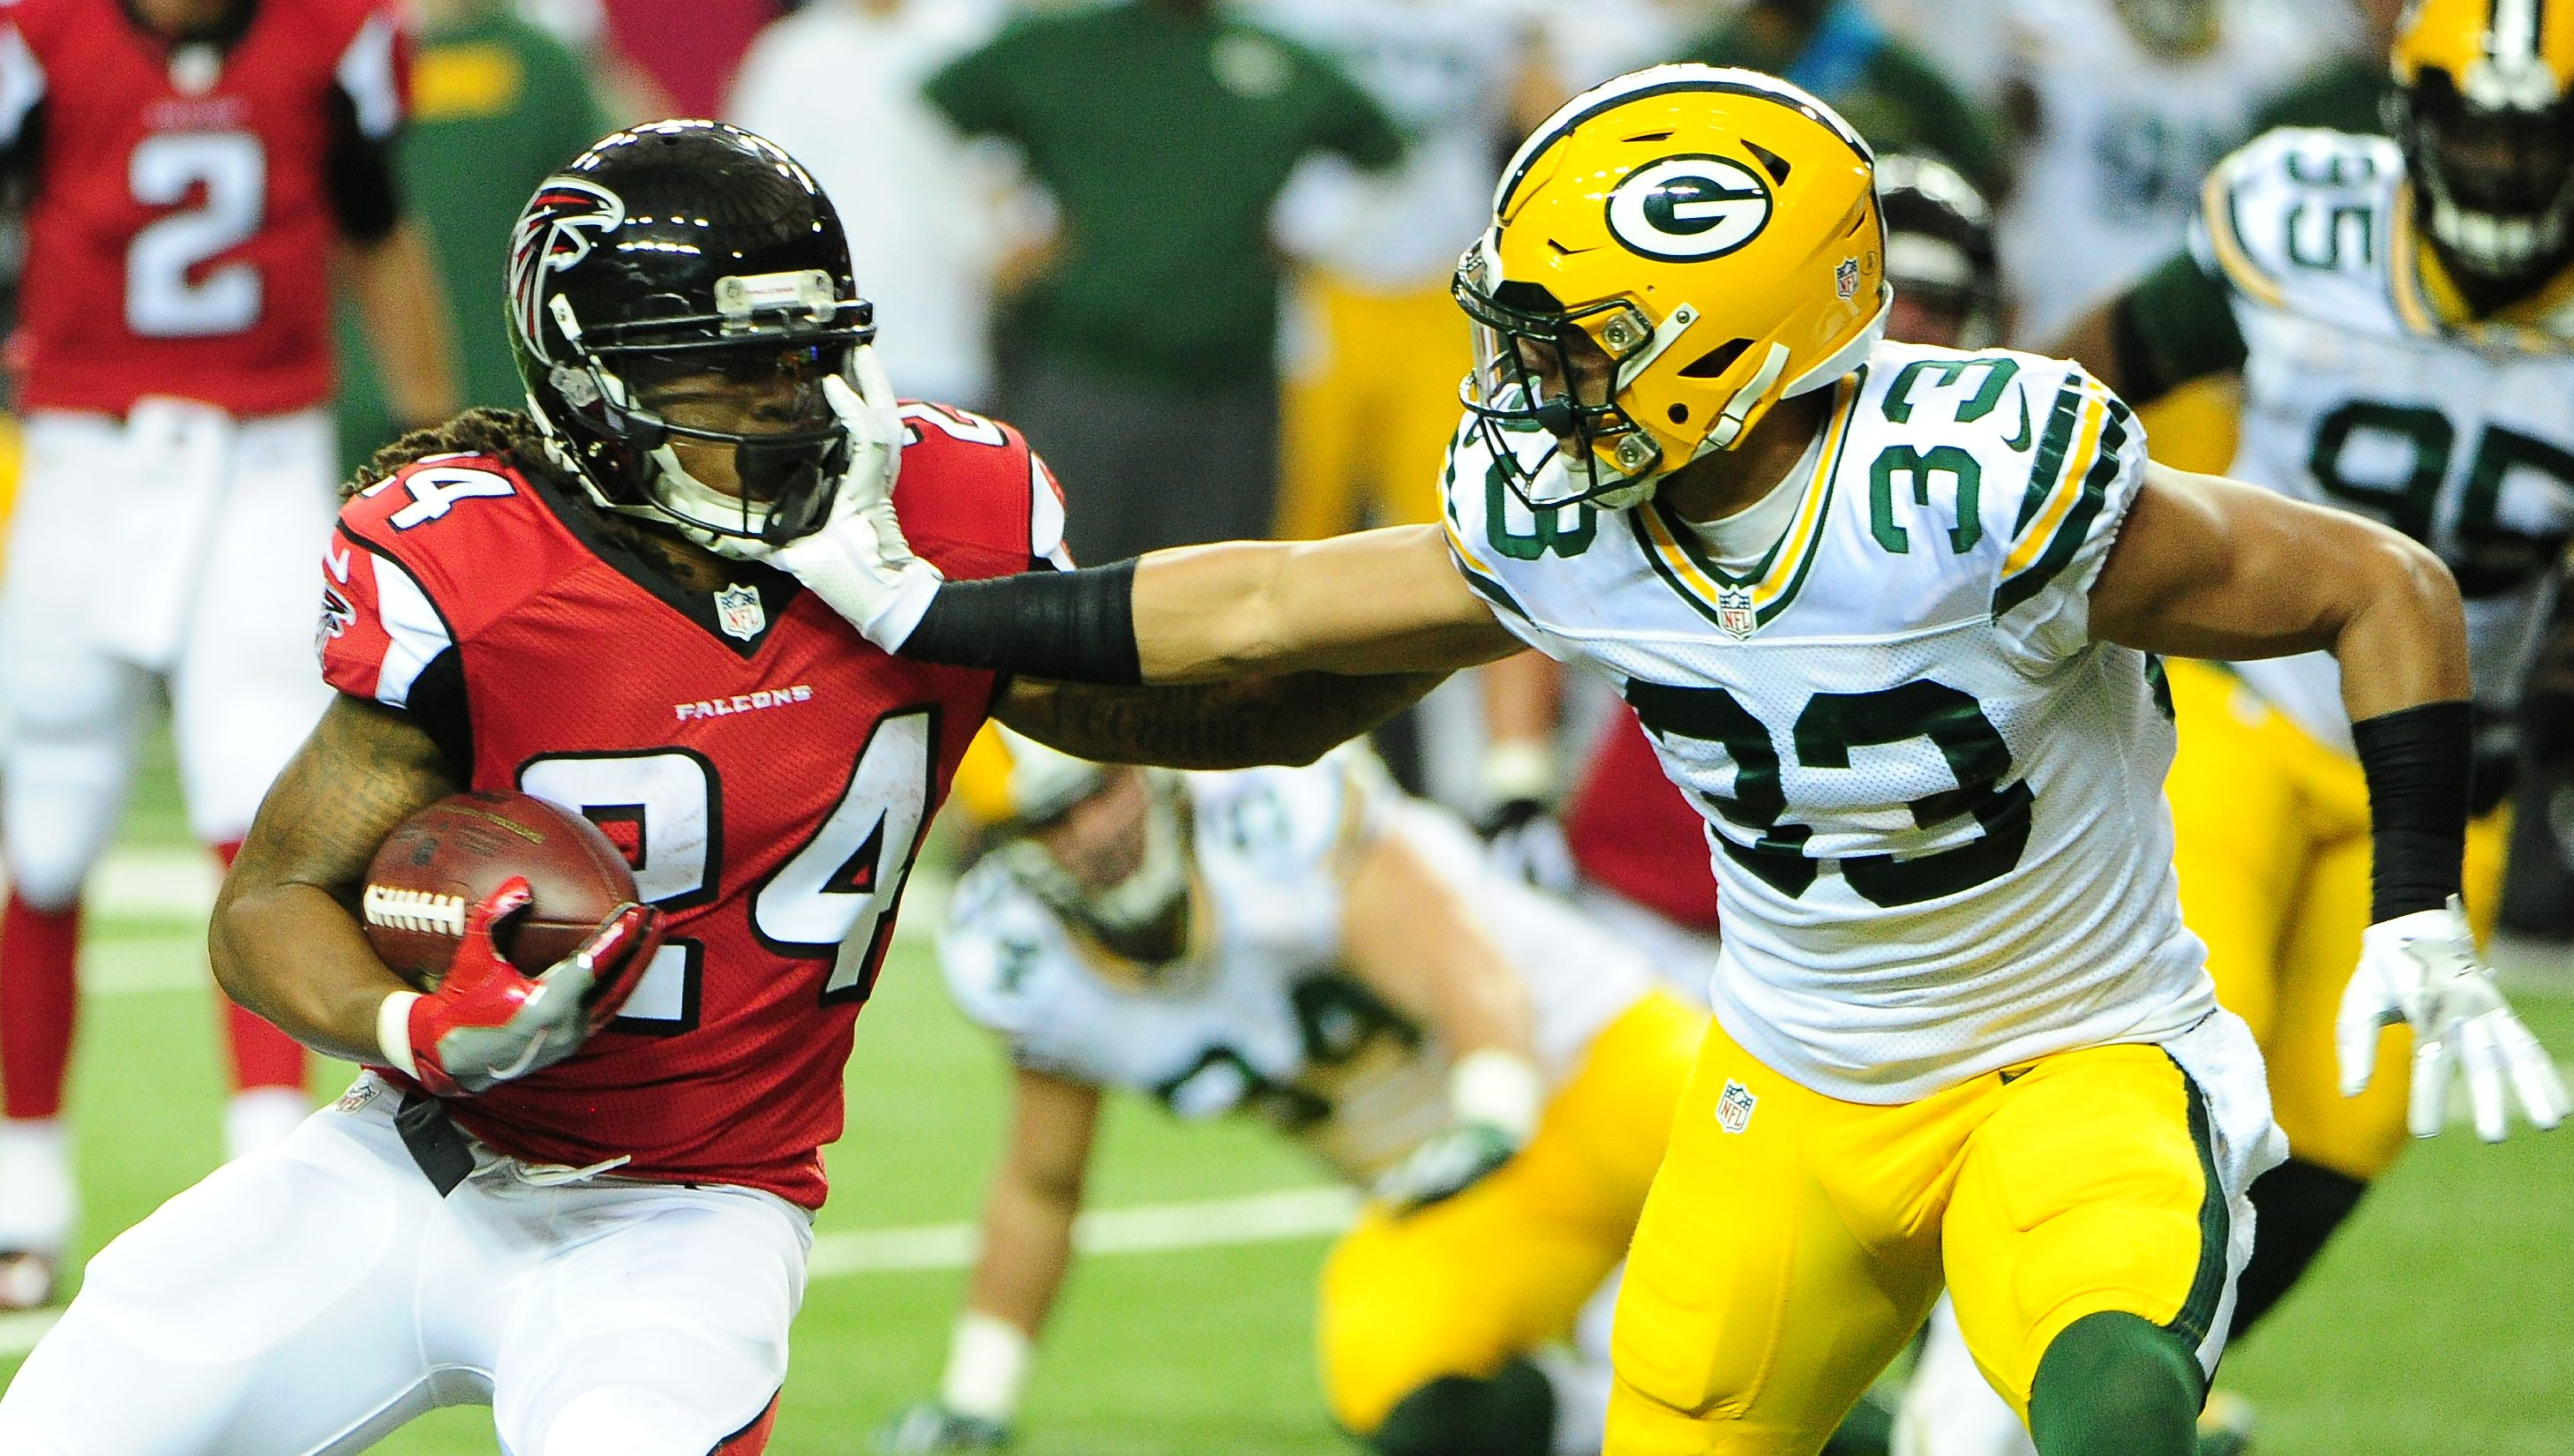 Falcons' playoff game date, time set - ajc